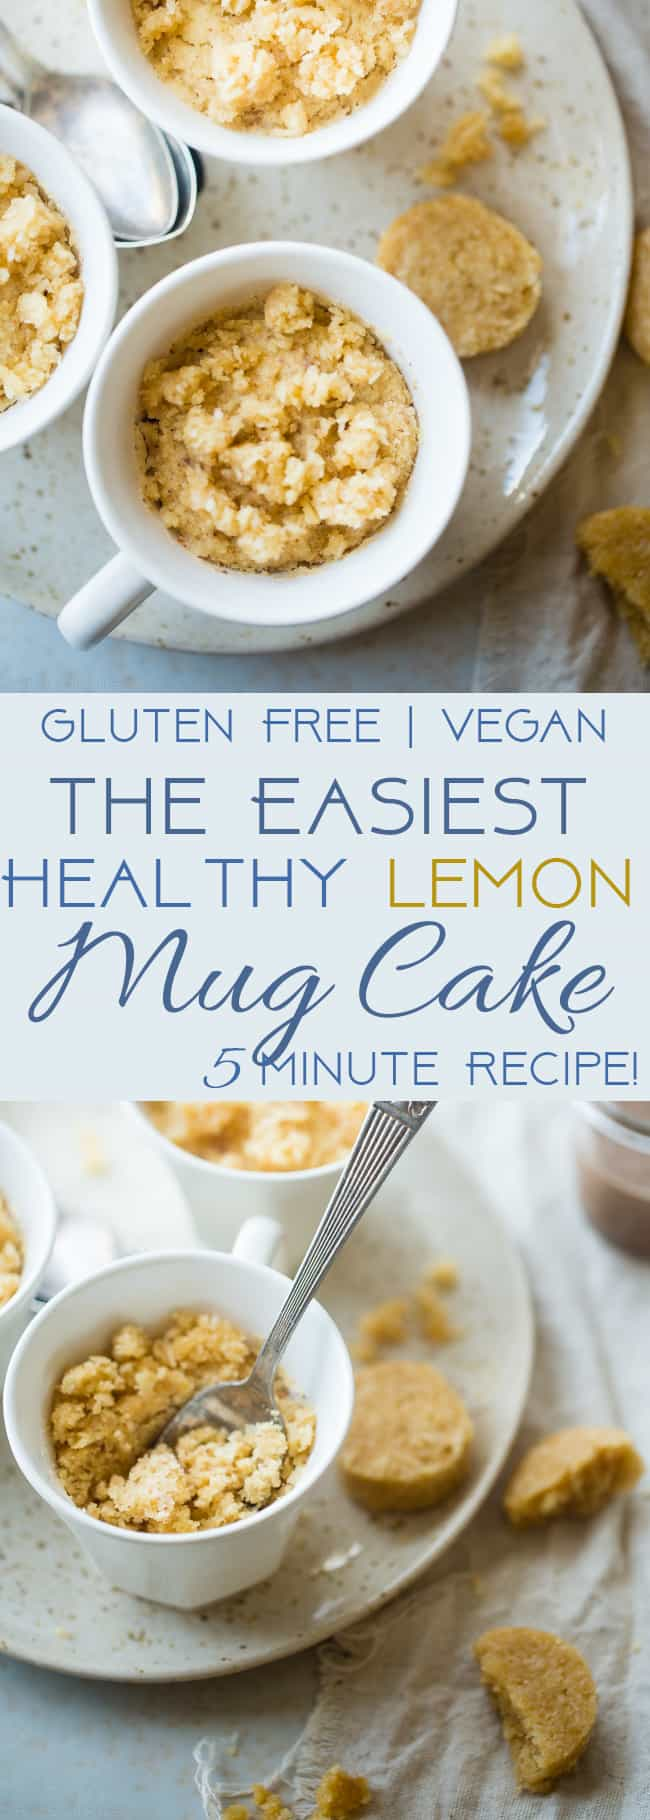 Gluten Free Lemon Macaroon Vegan Mug Cake - Have cookies IN your cake with this easy, gluten free vegan mug cake that's mixed with crumbled up lemon macaroons. It's a healthy dessert that's ready in under 5 minutes! | Foodfaithfitness.com | @FoodFaithFit | easy vegan mug cake. healthy vegan mug cake. vanilla mug cake. gluten fee mug cake. healthy mug cake. lemon mug cake. mug cake with coconut flour. flourless mug cake. Mug cake with applesauce.